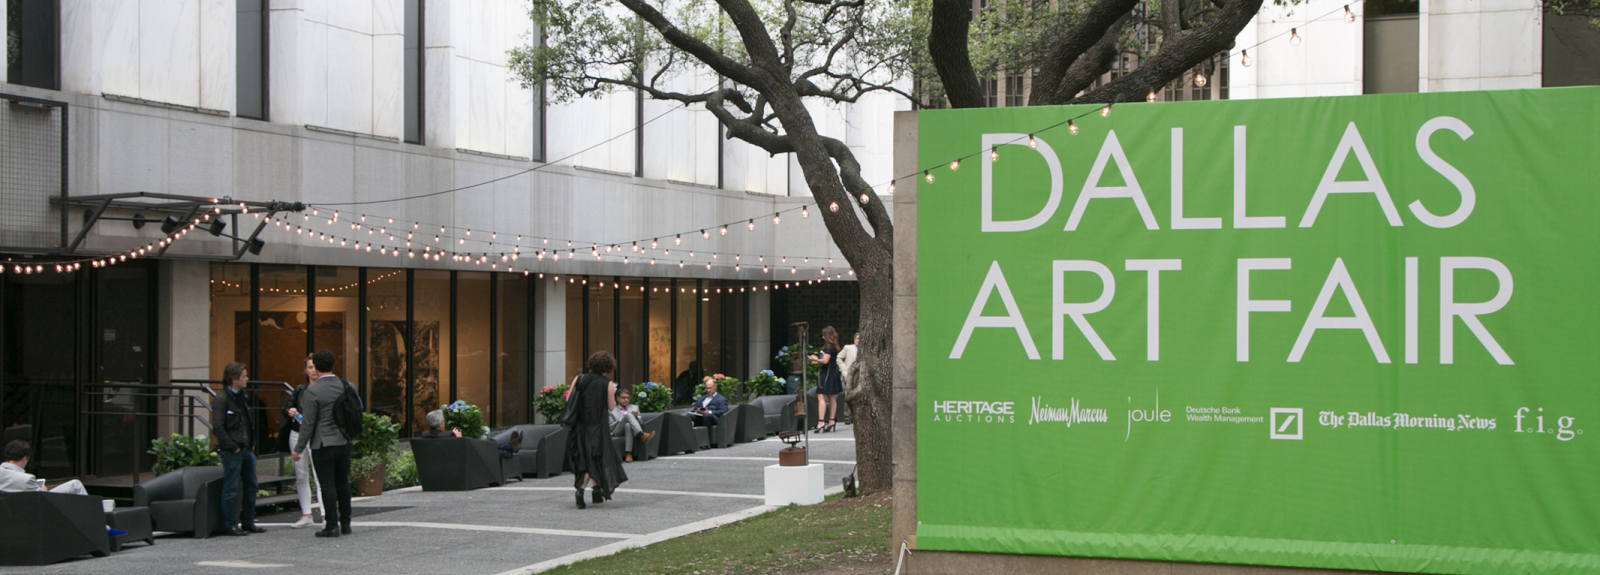 Fashion industry gallery - Located At The Fashion Industry Gallery Adjacent To The Dallas Museum Of Art In The Revitalized Downtown Arts District The 2017 Dallas Art Fair Will